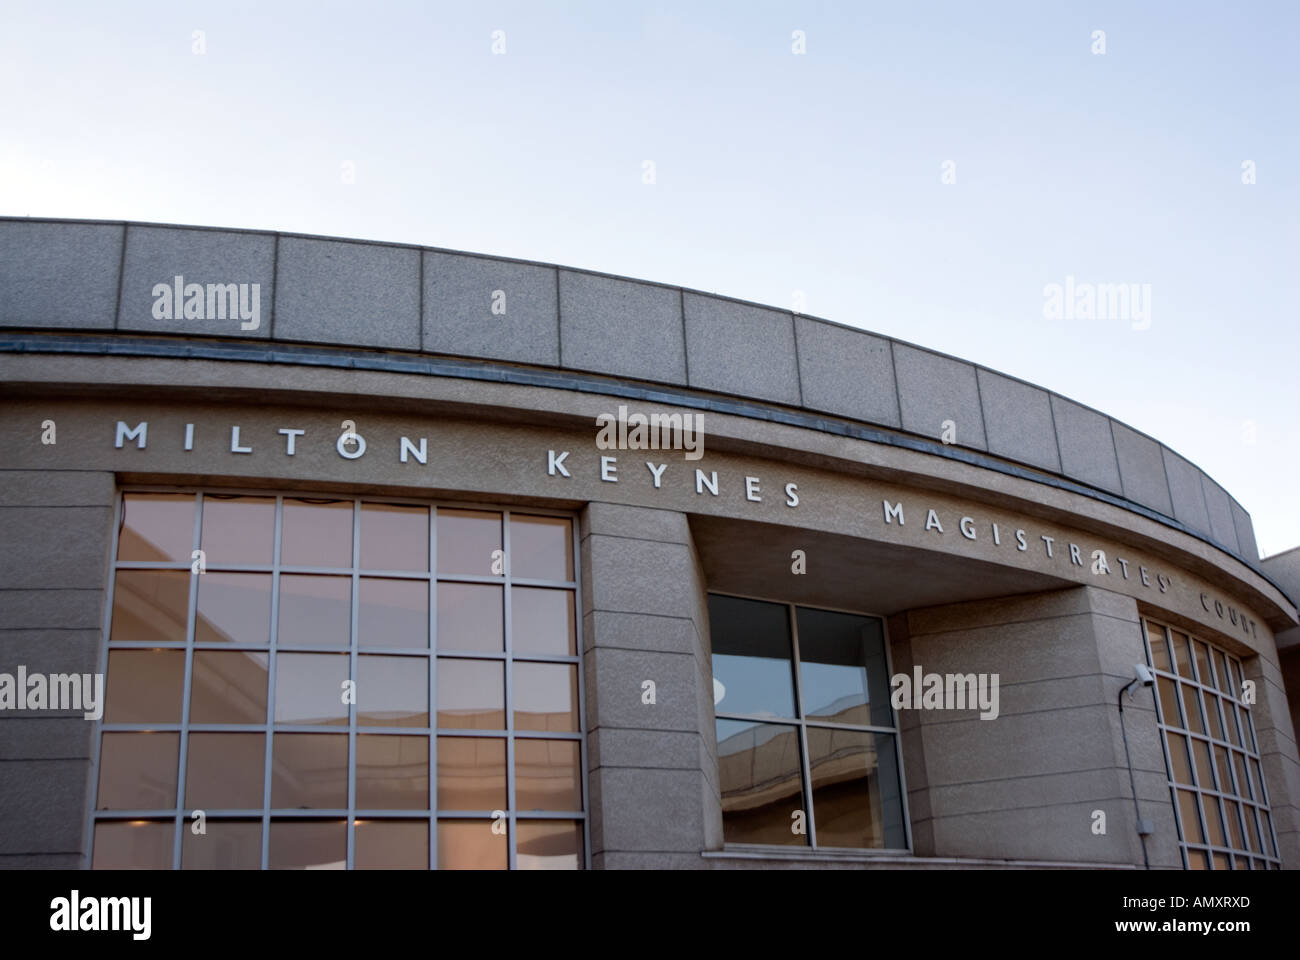 City of Milton Keynes Magistrates Court - Stock Image